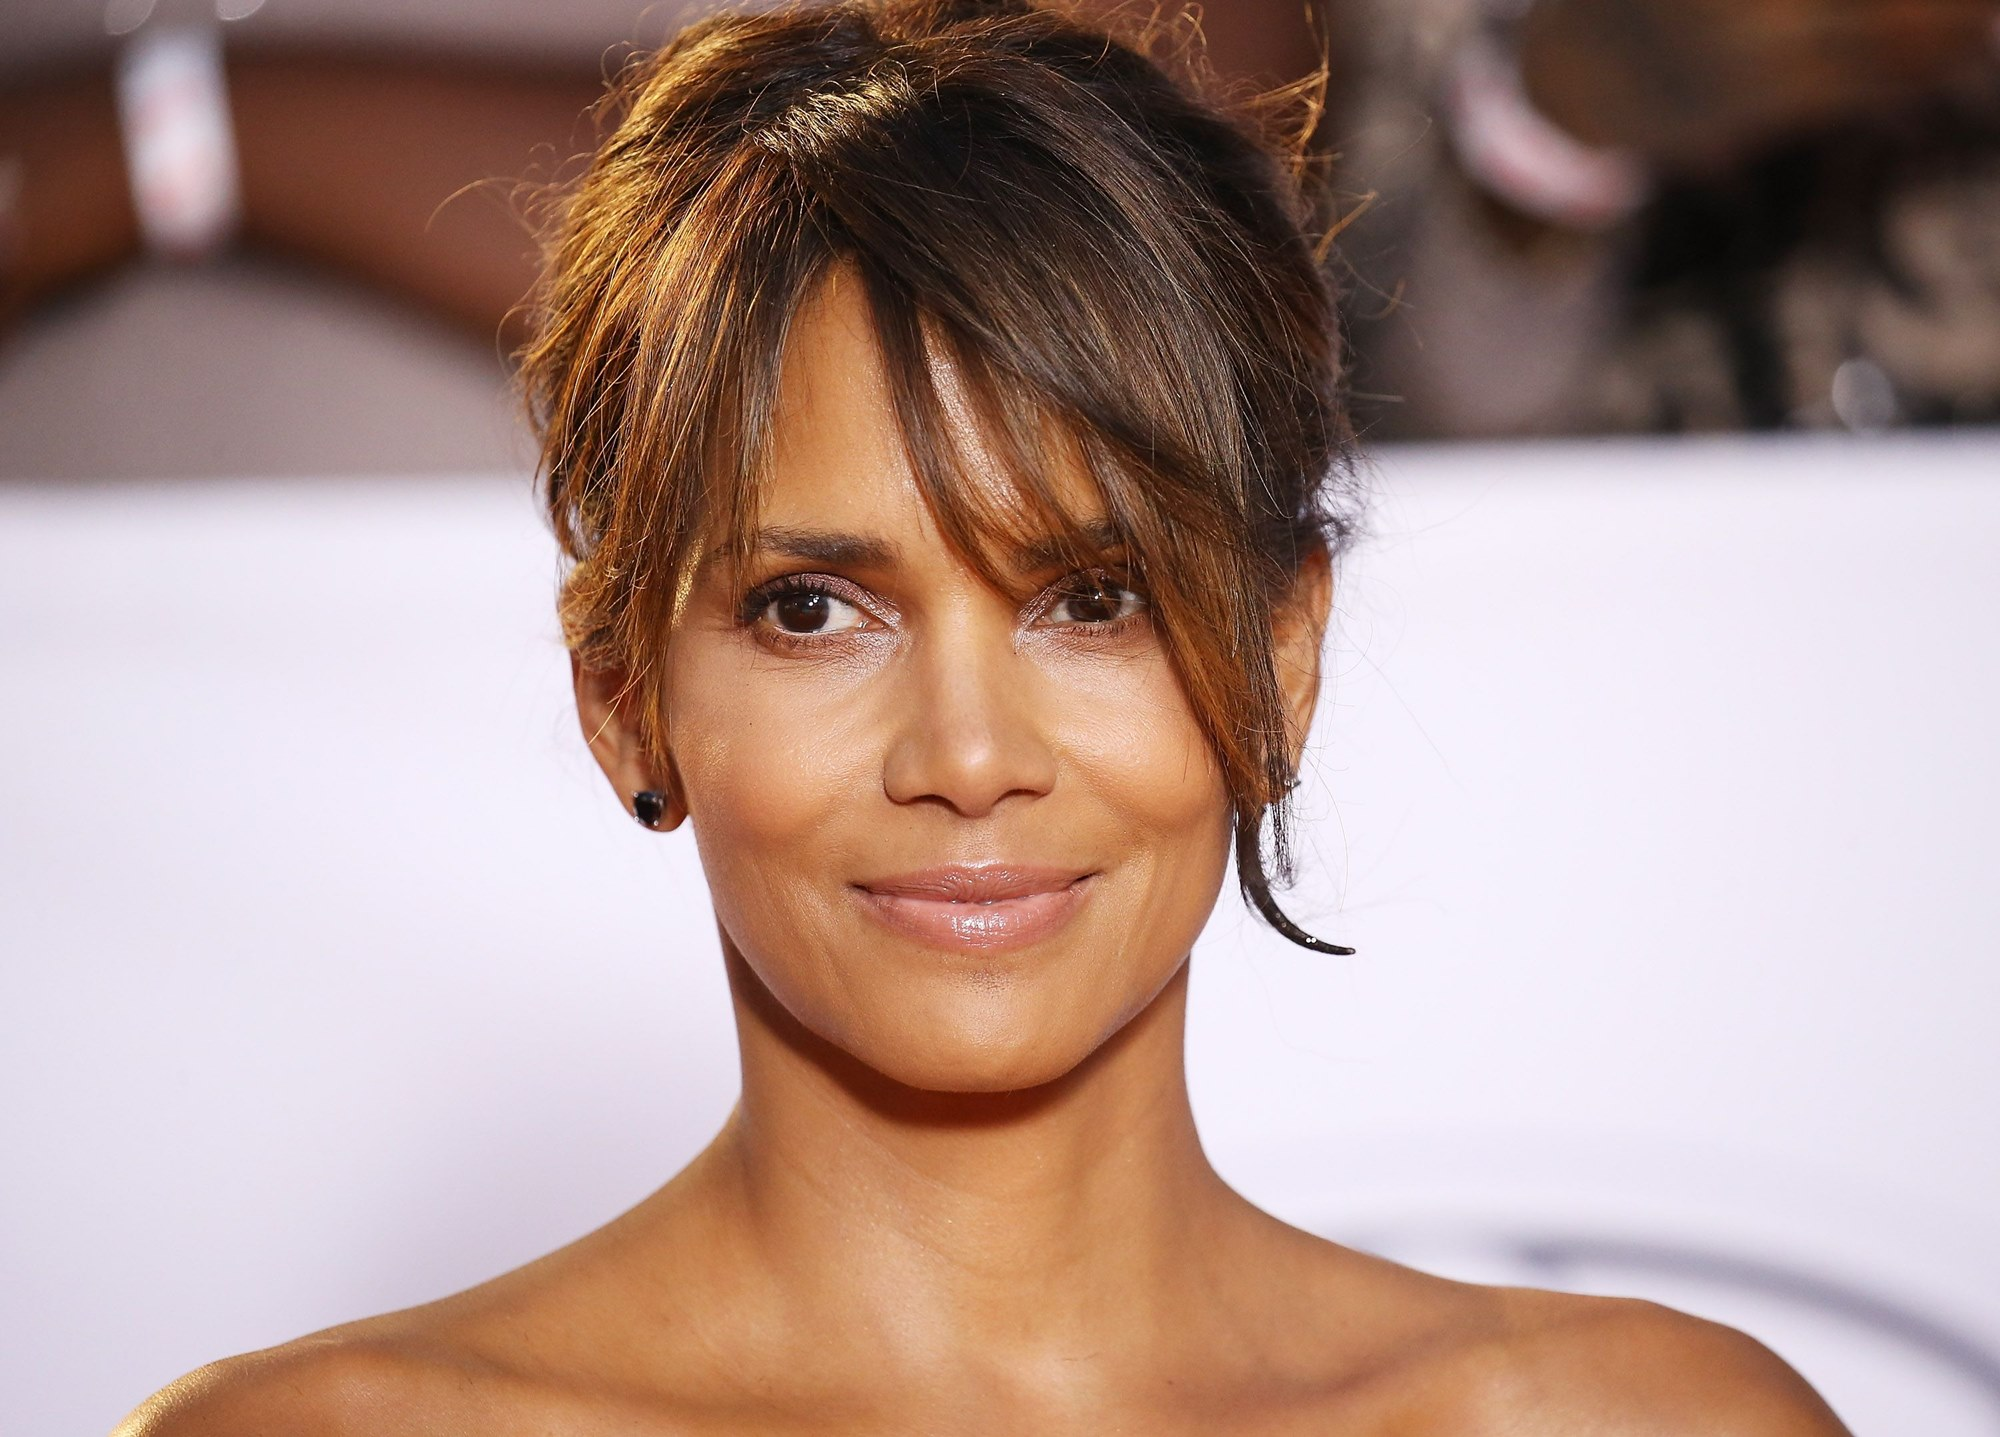 Halle Berry Online Party DJ D-Nice Dating Rumors